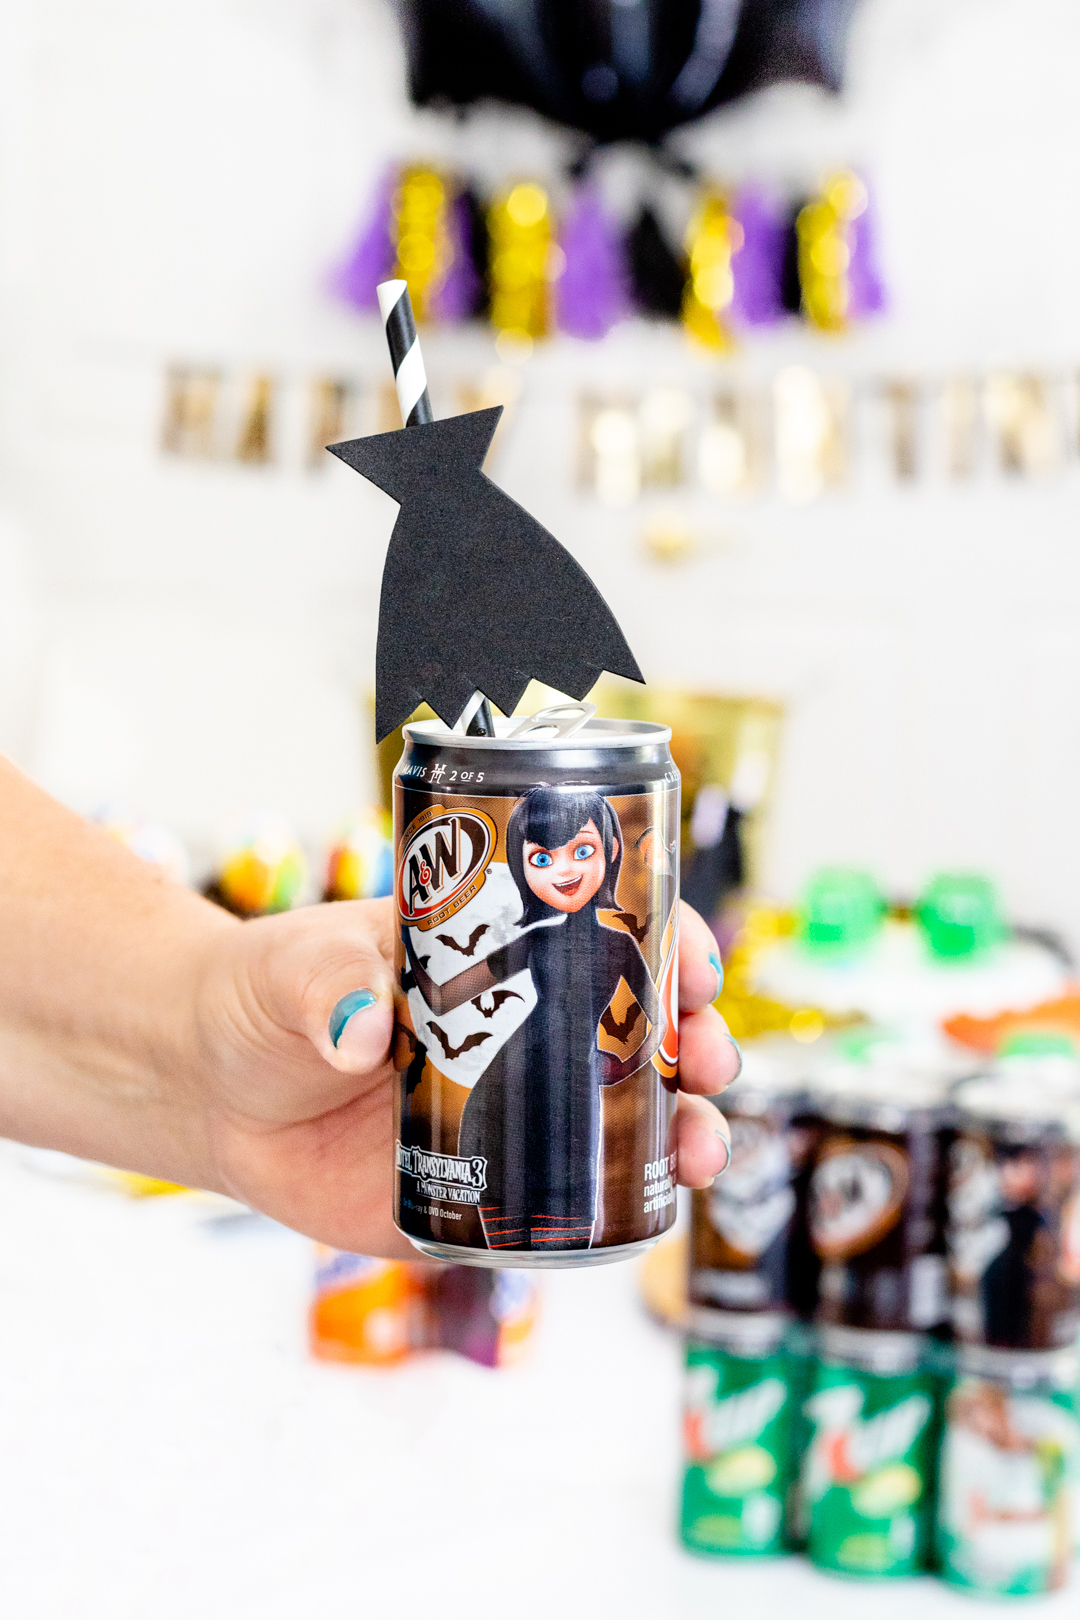 Hotel Transylvania Party Ideas for Halloween.